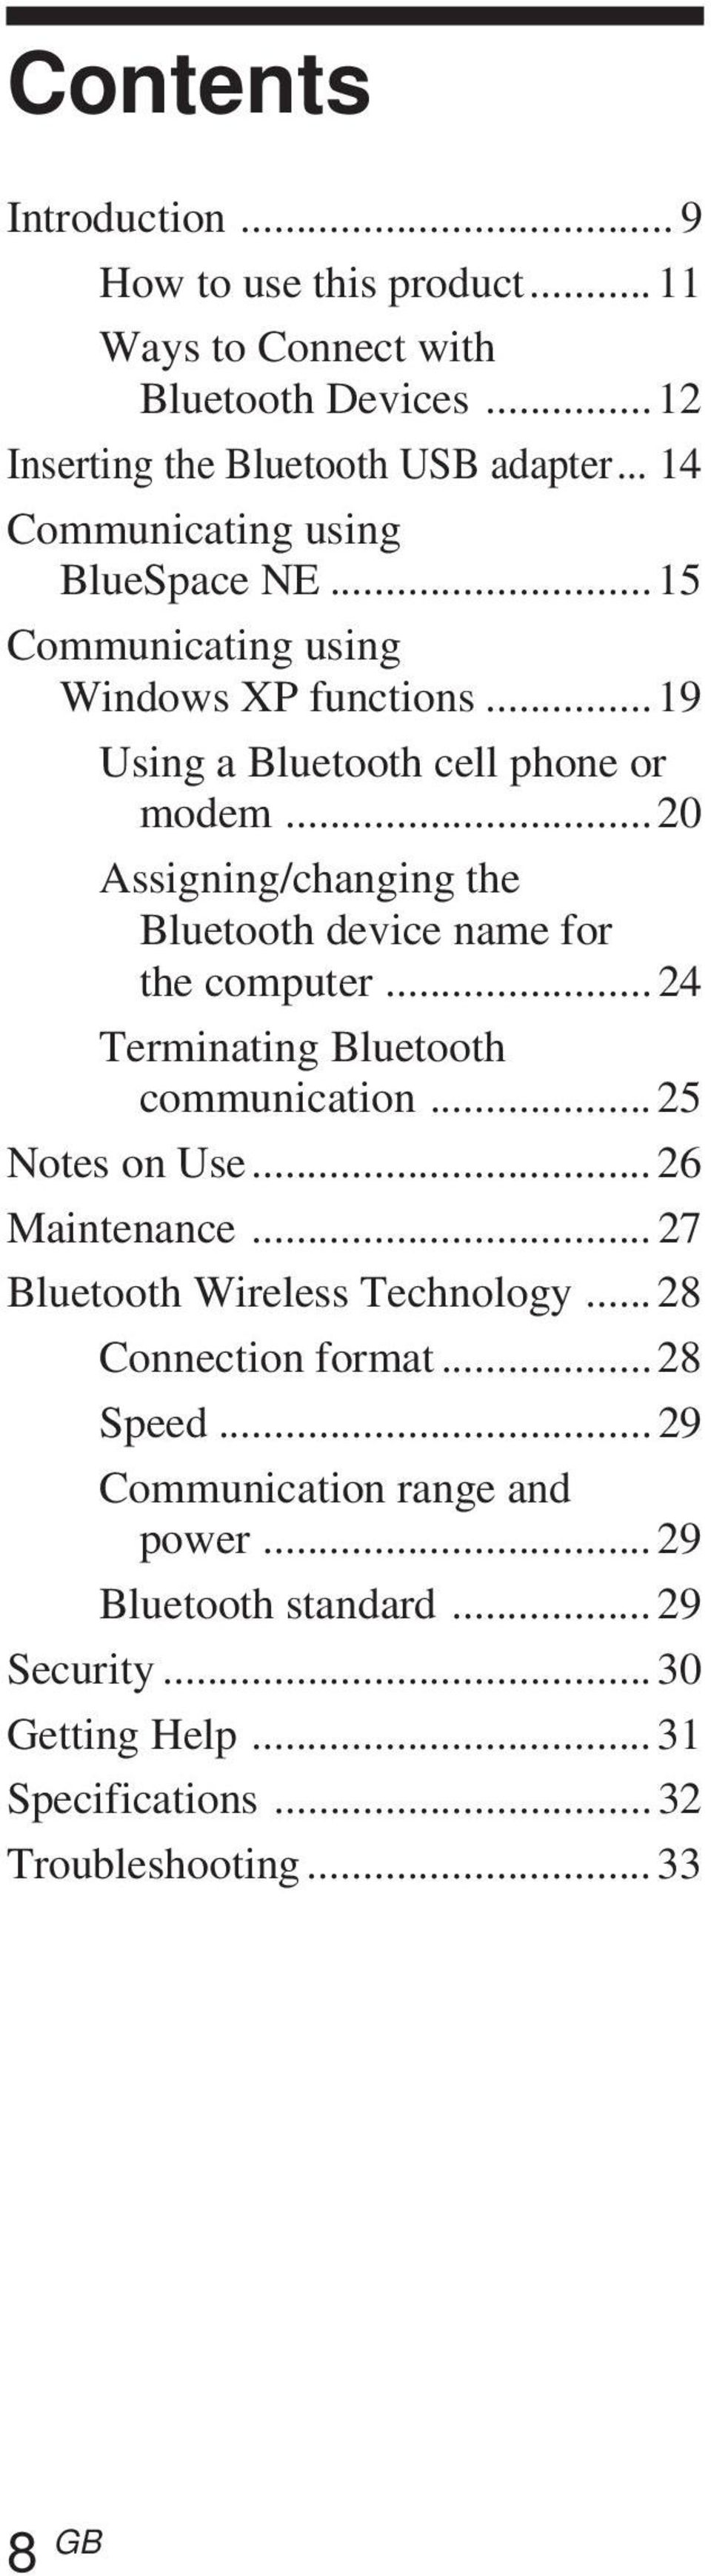 ..20 Assigning/changing the Bluetooth device name for the computer... 24 Terminating Bluetooth communication... 25 Notes on Use... 26 Maintenance.